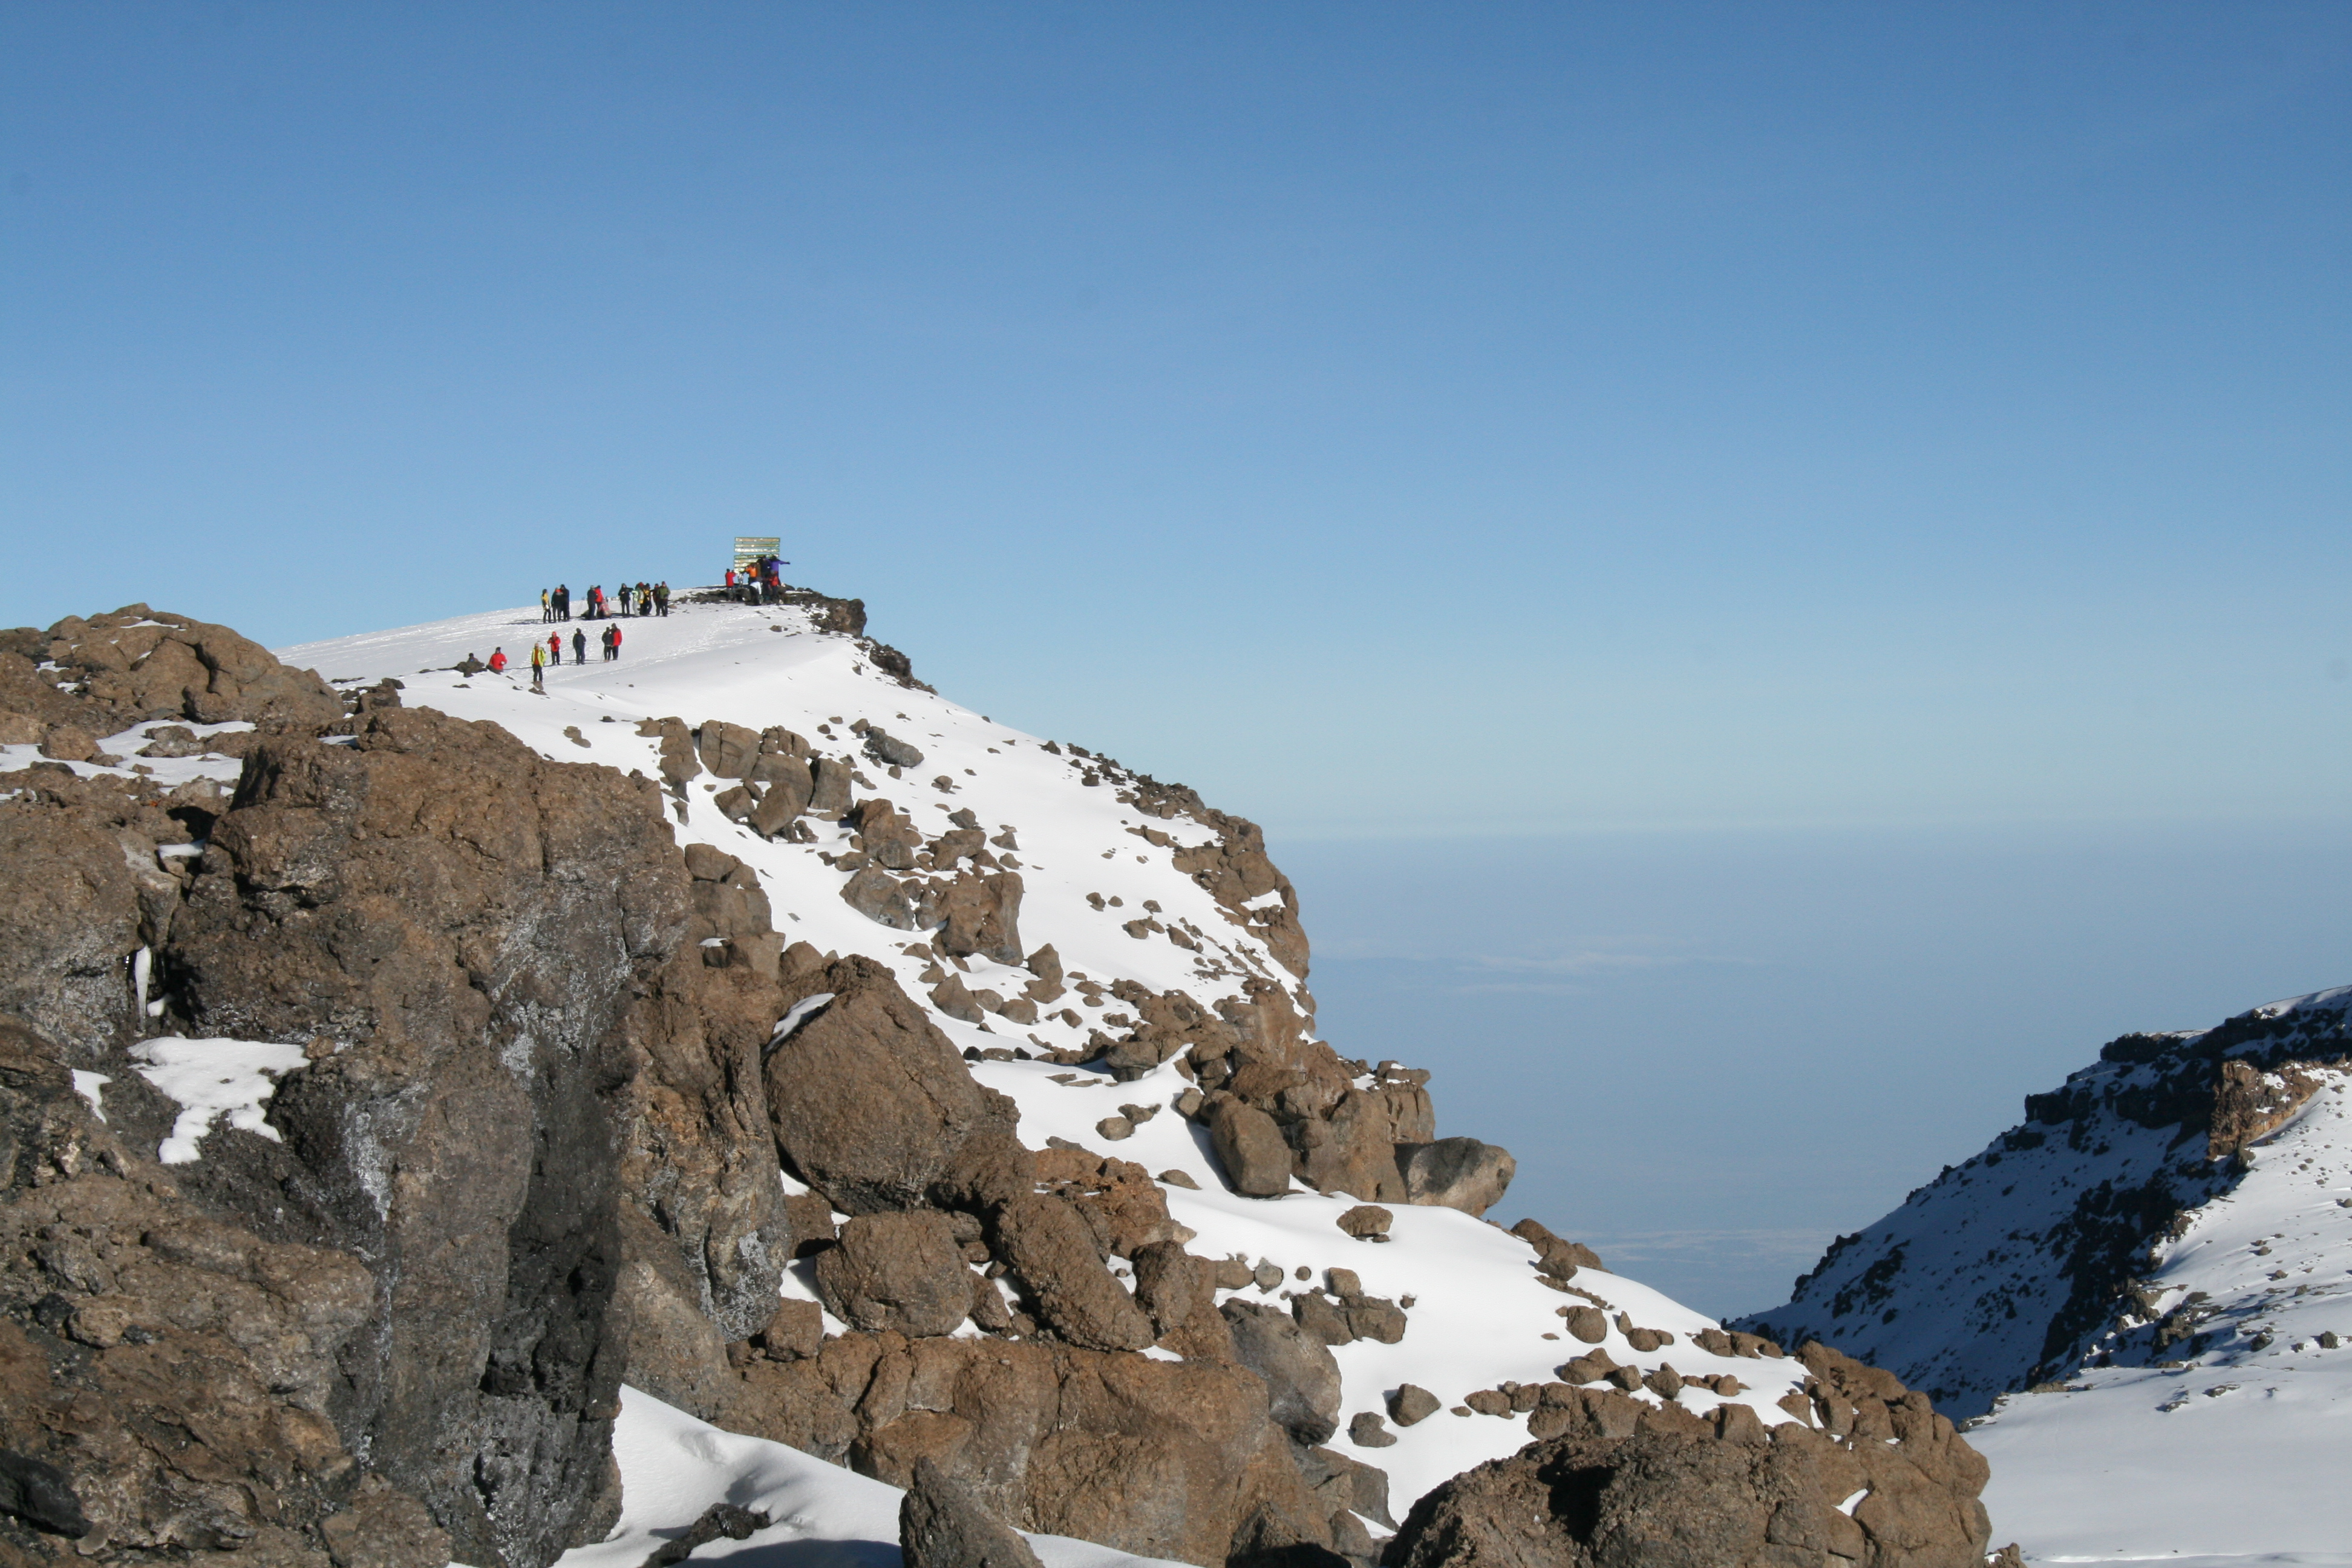 Kilimanjaro summit - one of the Volcanic Seven Summits